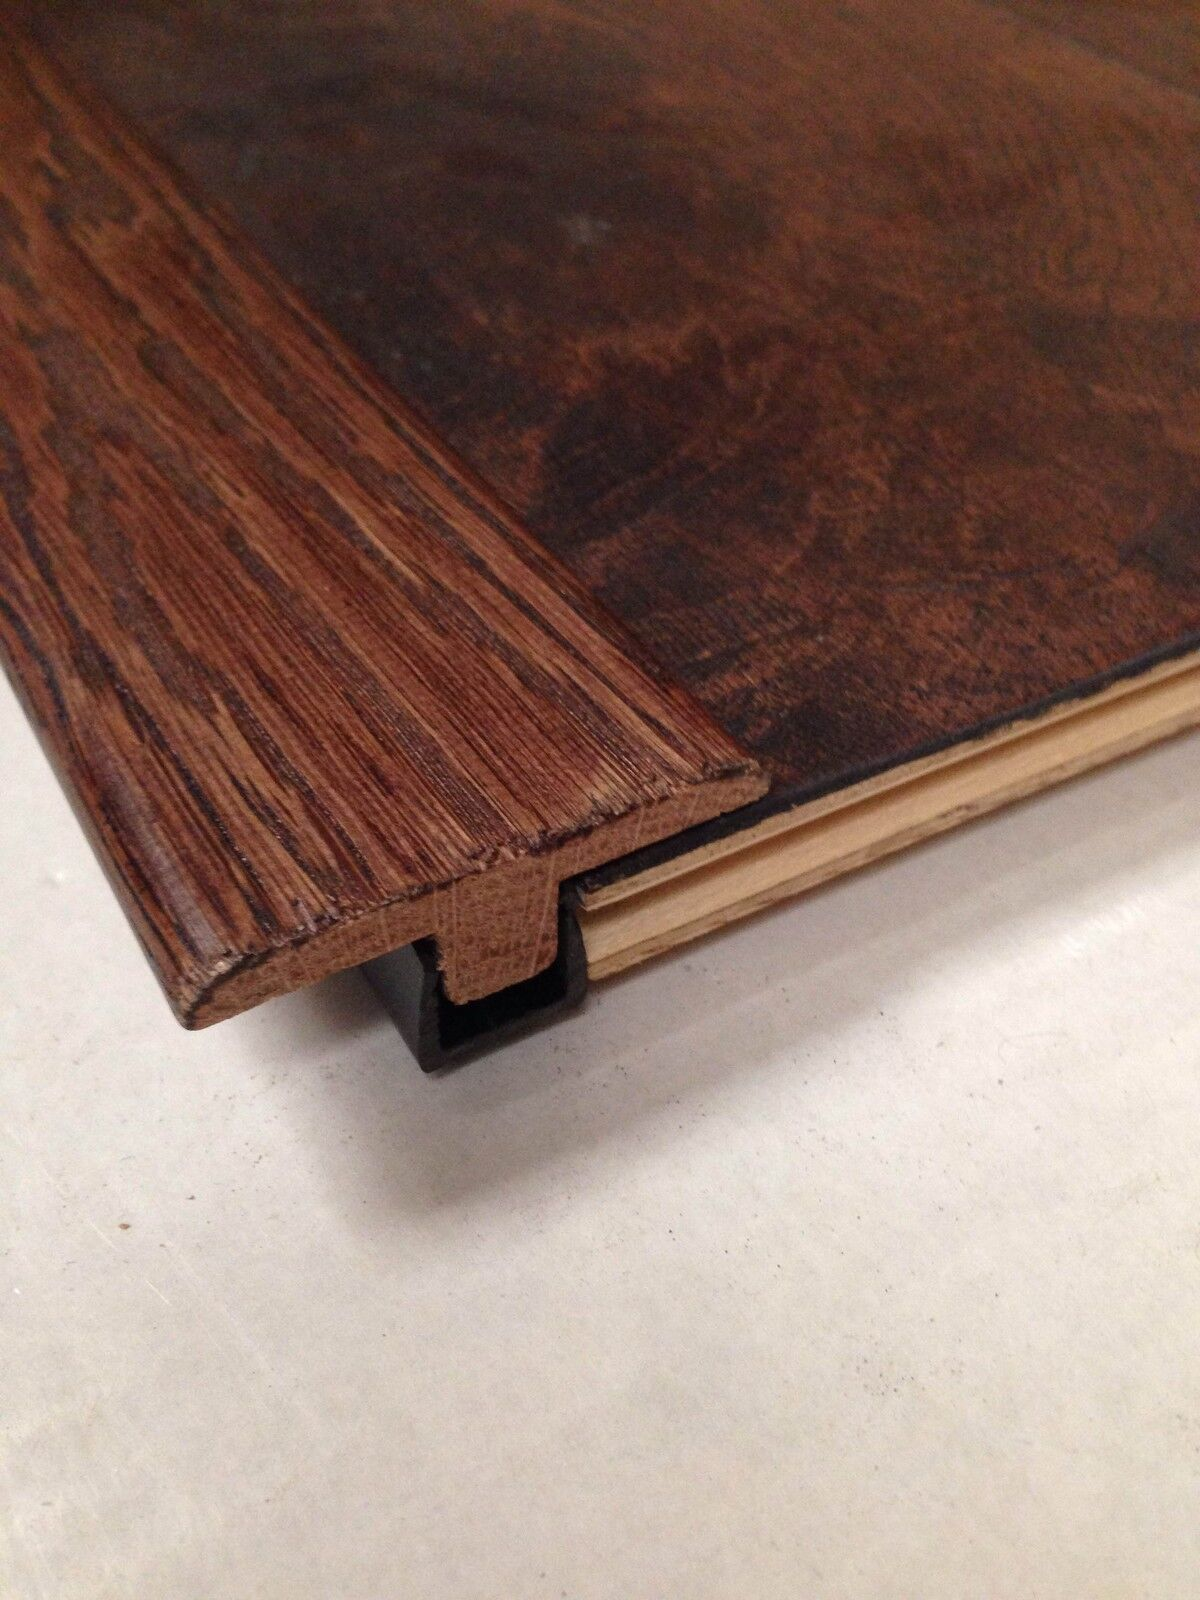 Real Solid T Section For Wood Floors Threshold Door Bar